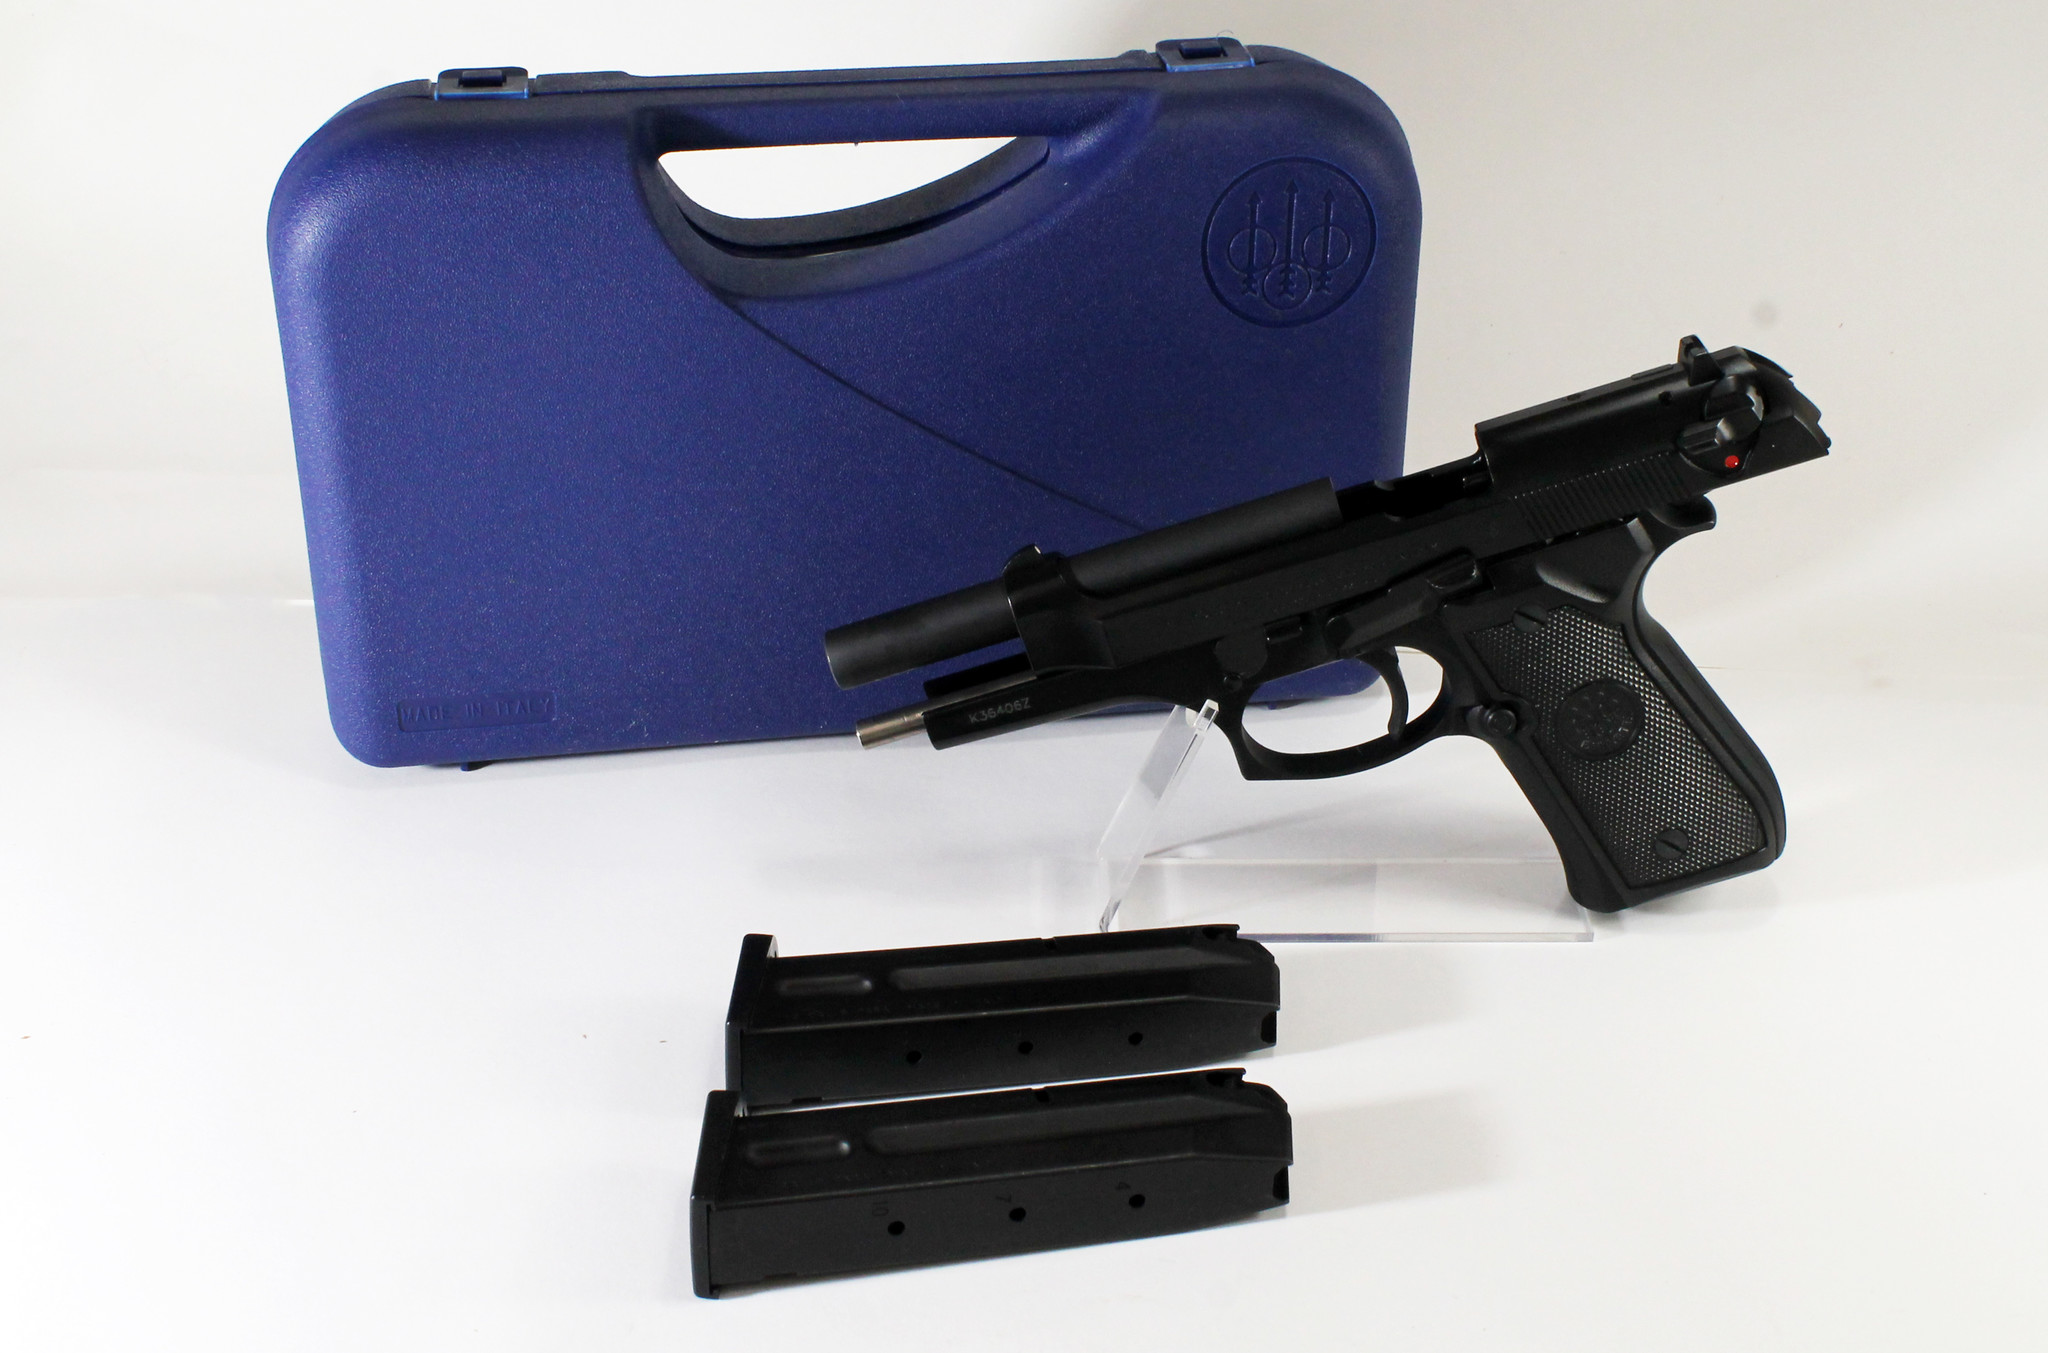 Beretta UHG-6737 BERETTA 92 FS 9 MM WITH CASE 2MAGS